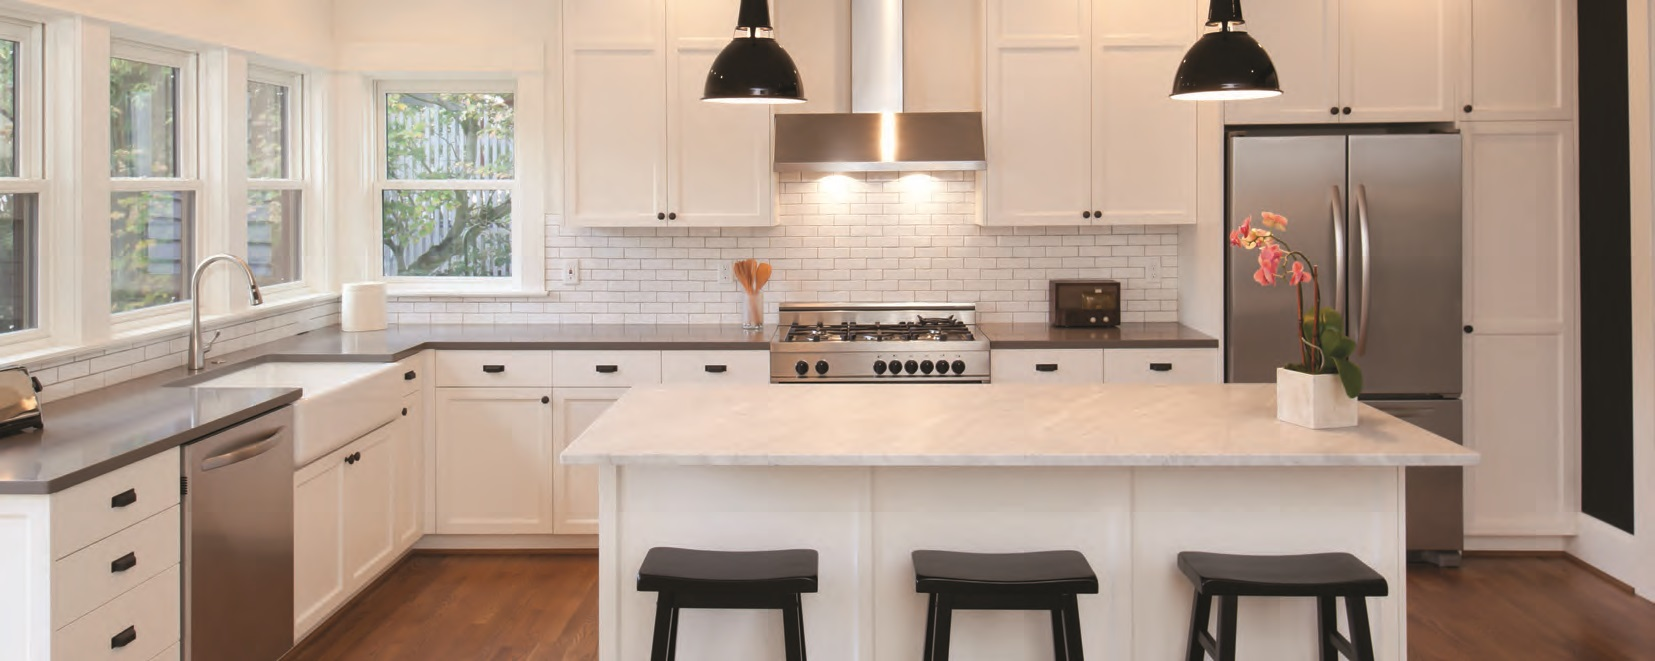 Reface kitchen cabinets tampa picture ideas with remodel kitchen uk